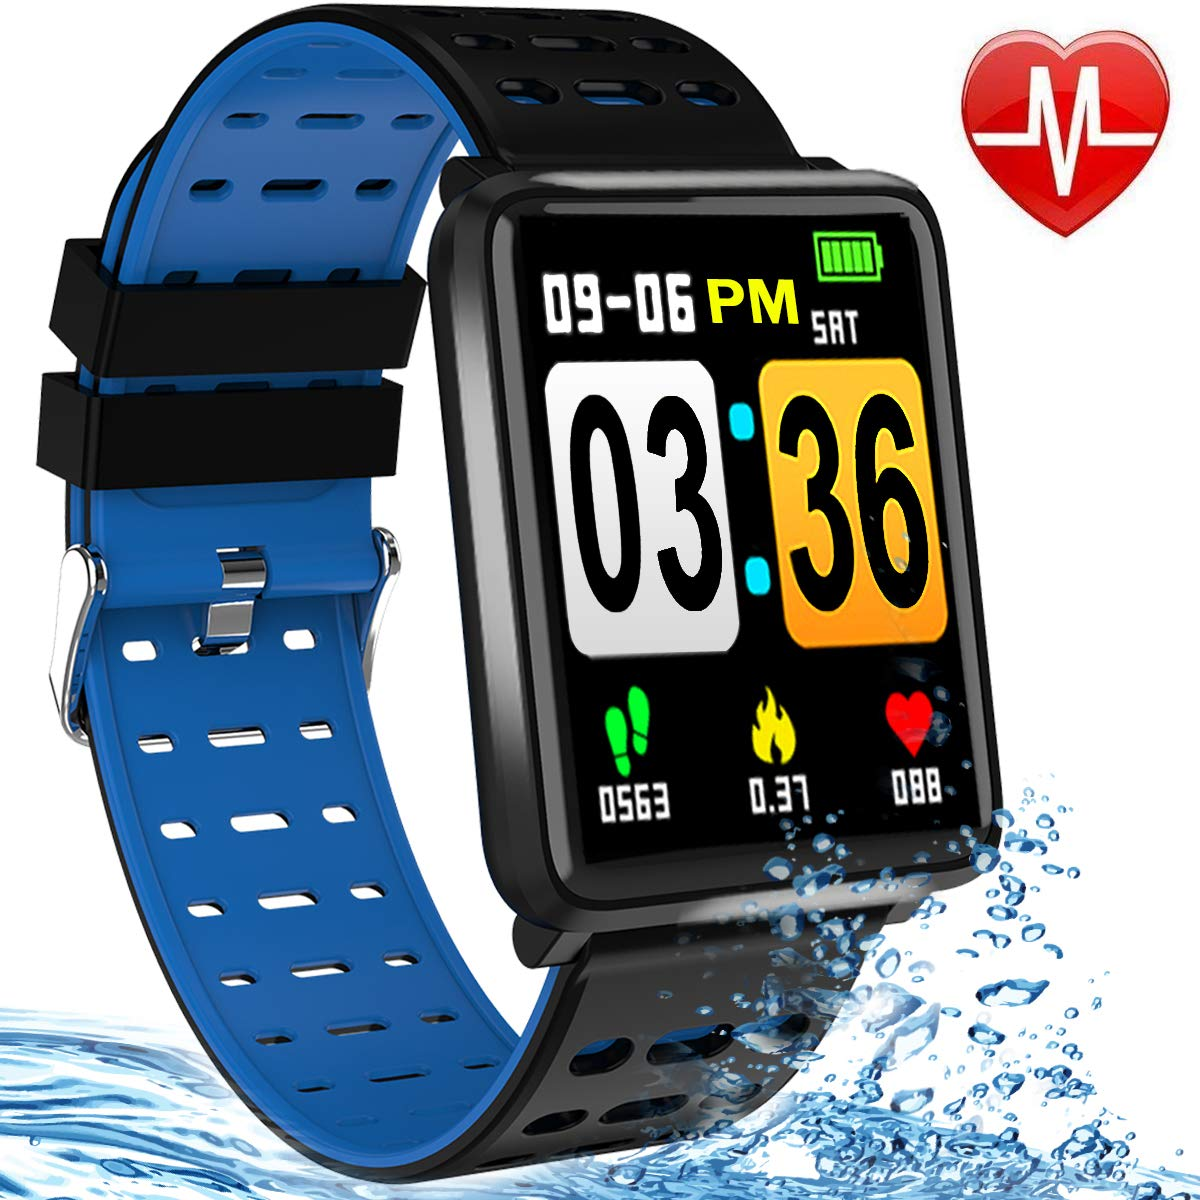 Fitness Tracker Heart Rate Smart Watch Blood Pressure/Oxygen Monitor IP67 Waterproof Health Activity Tracker Watches for Man Women 1.44 Inch Color Screen PM/AM Format Smart Bracelet Pedometer